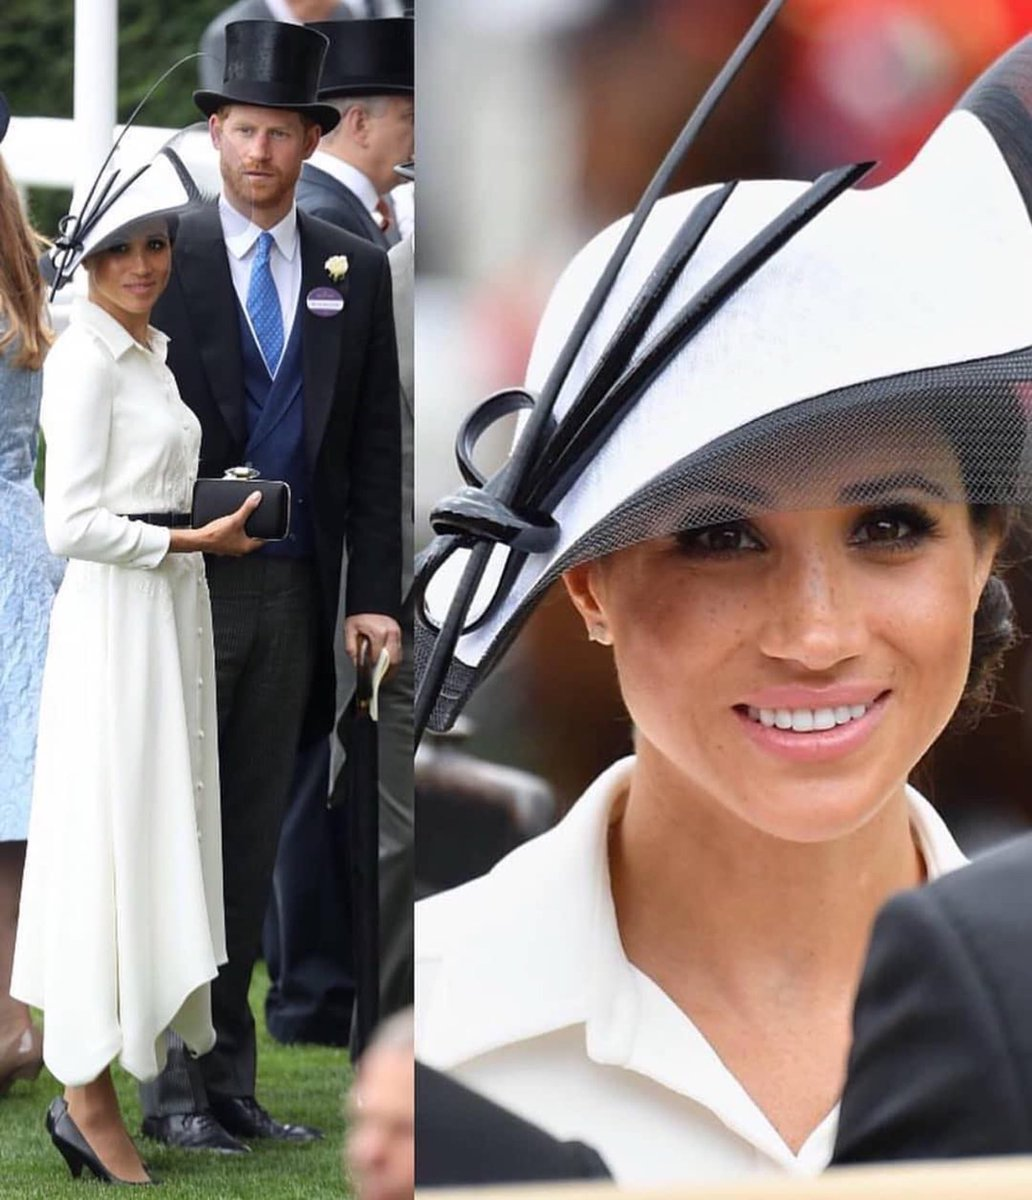 Today at #RoyalAscot2018 Love her topper! #duchessofsussex #dukeofsussex #princeharry #harryandmeghan #meghanmarkle